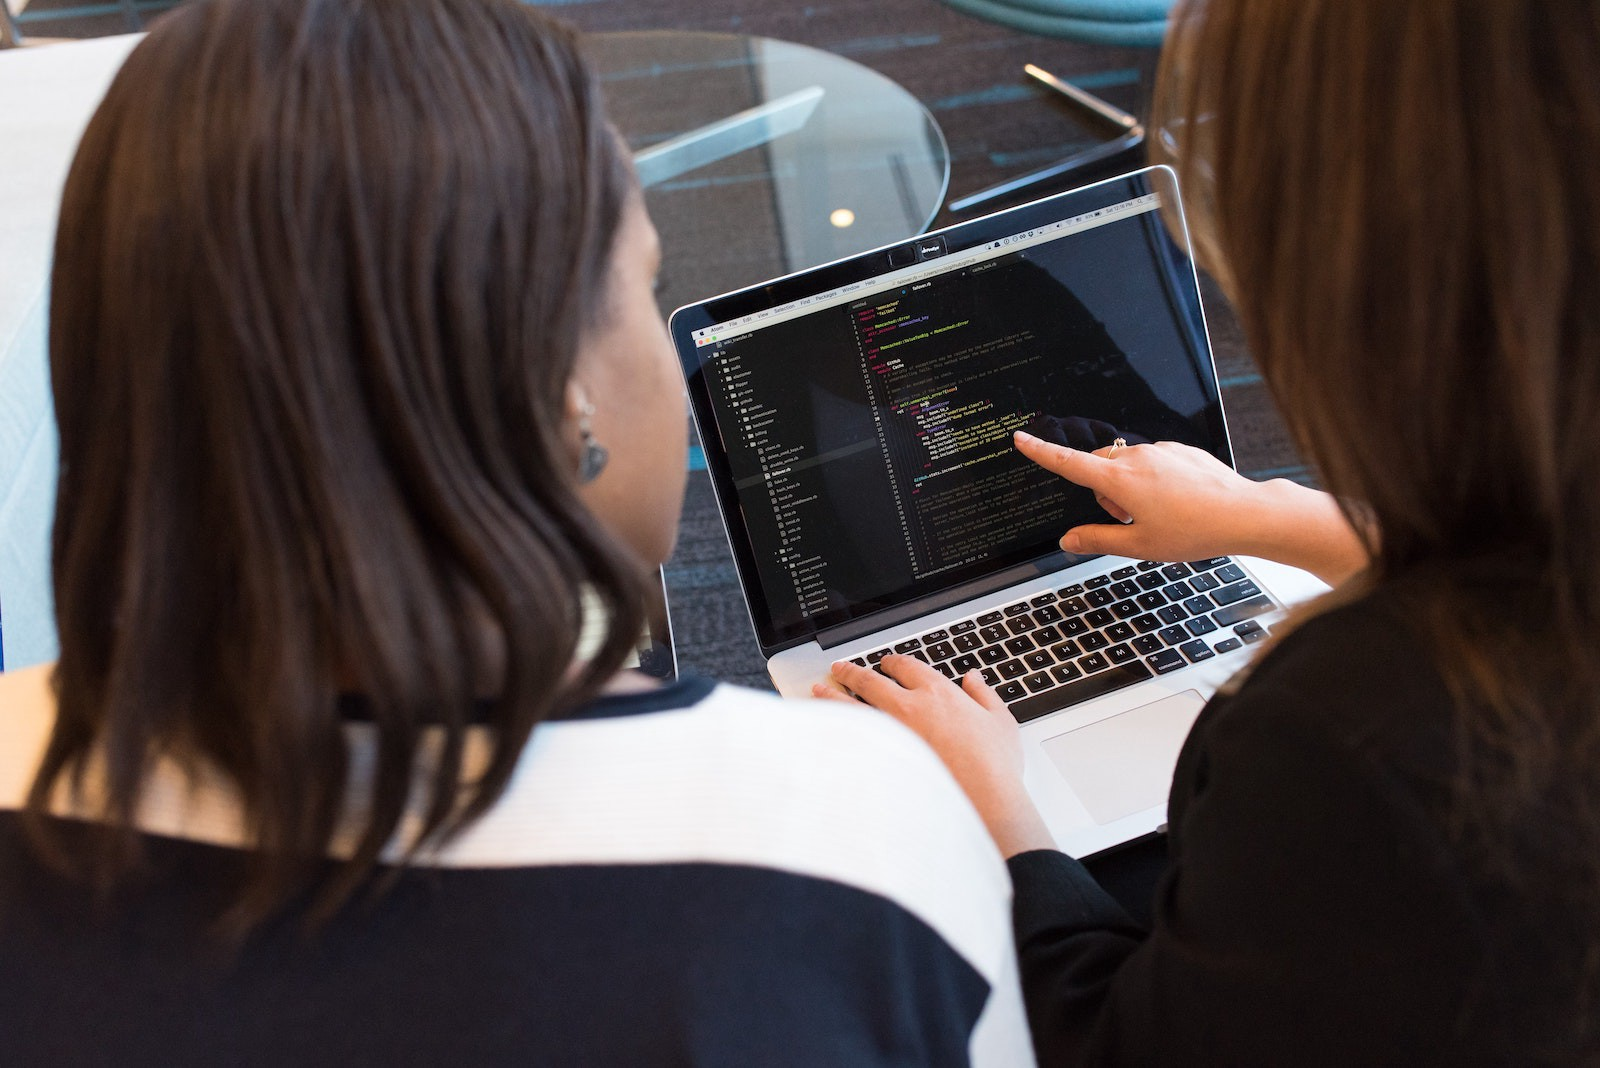 Two women look at a computer screen; one points at code displayed on the screen